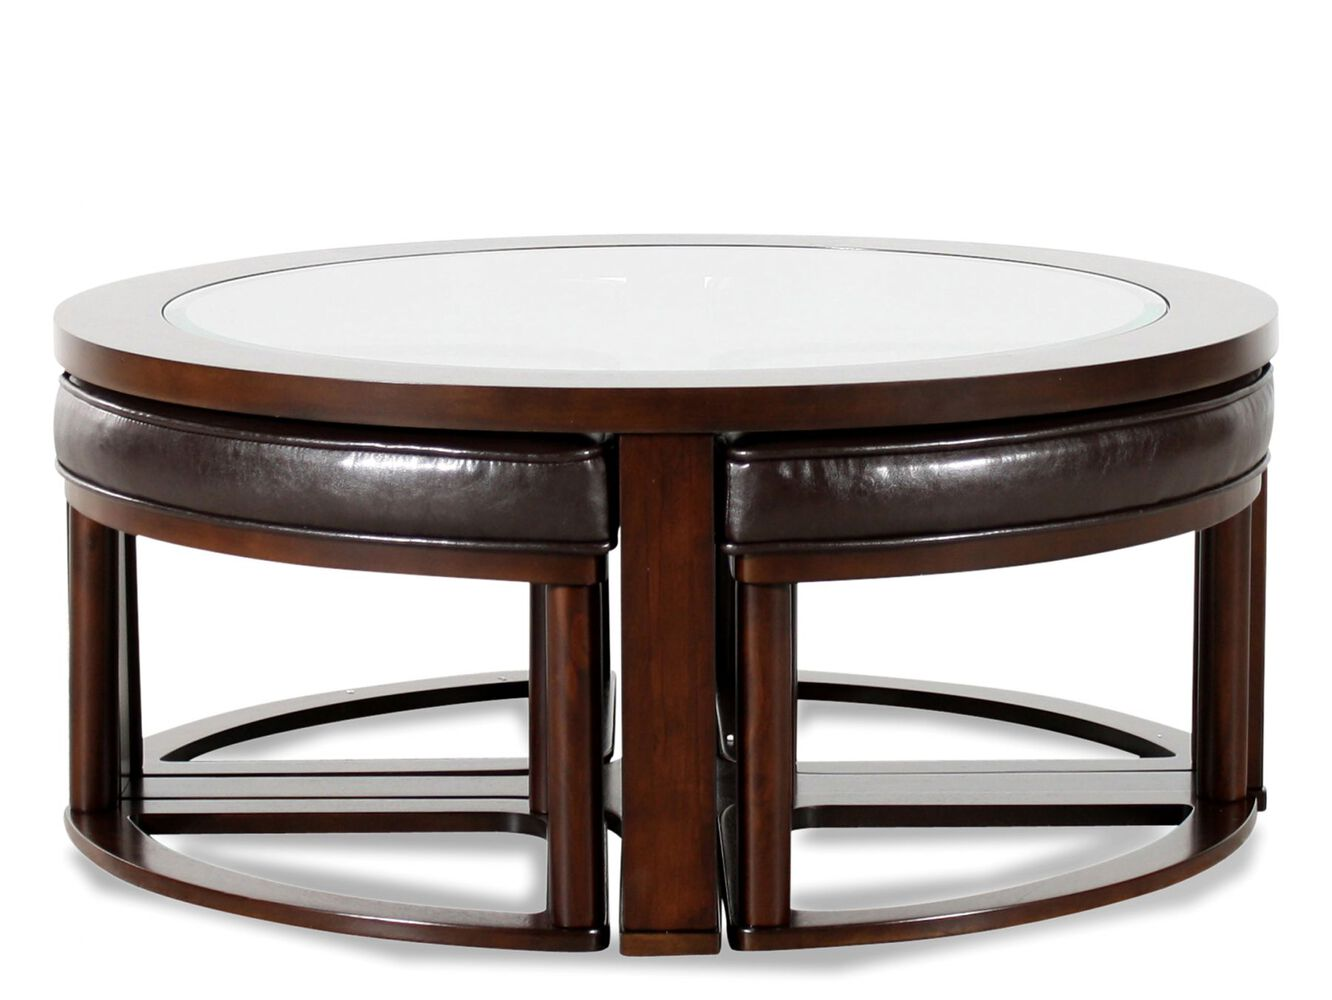 Round contemporary cocktail table in dark merlot mathis for Round contemporary coffee table